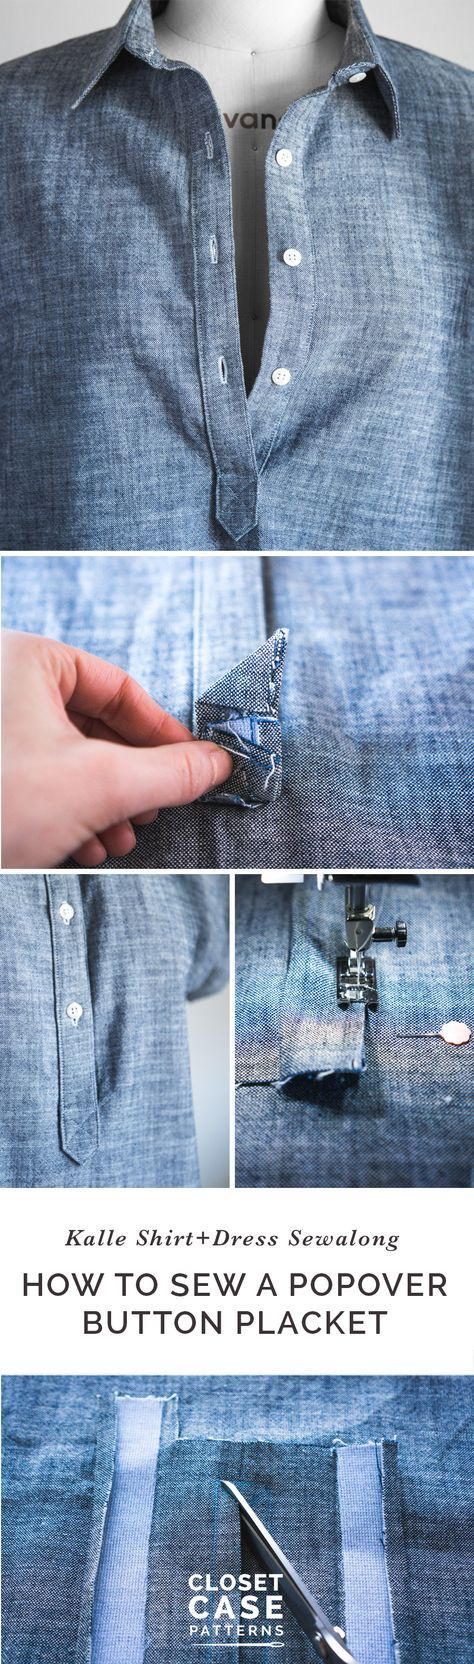 Sewing a Tunic or Popover Placket // Kalle Sewalong | Nähen ...